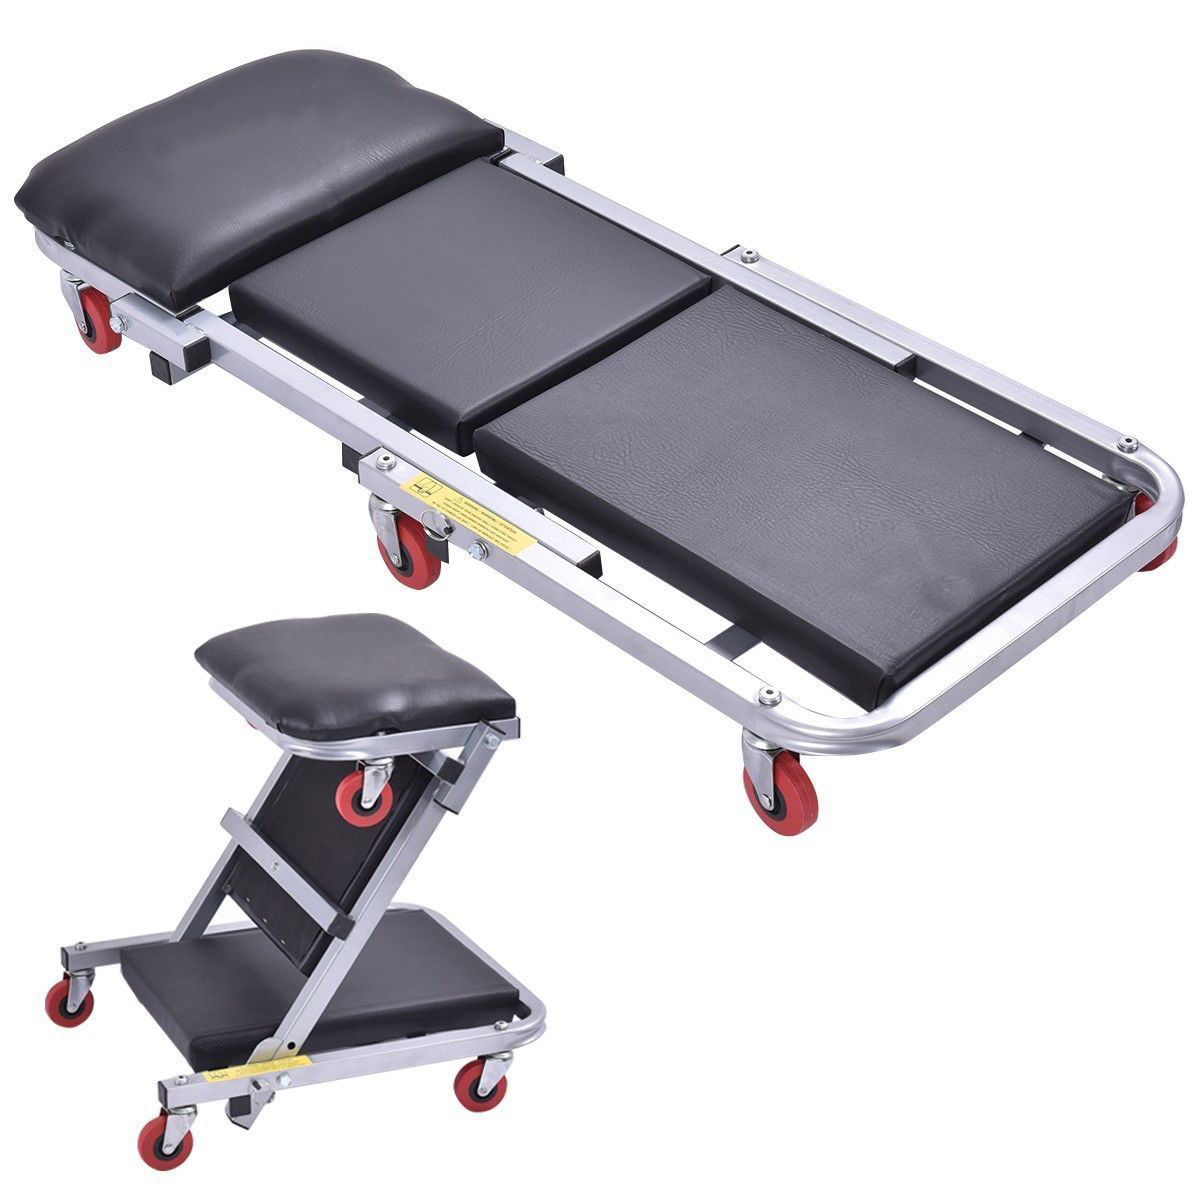 Picture of 2 In 1 Foldable Mechanics Z Creeper Seat Rolling Chair